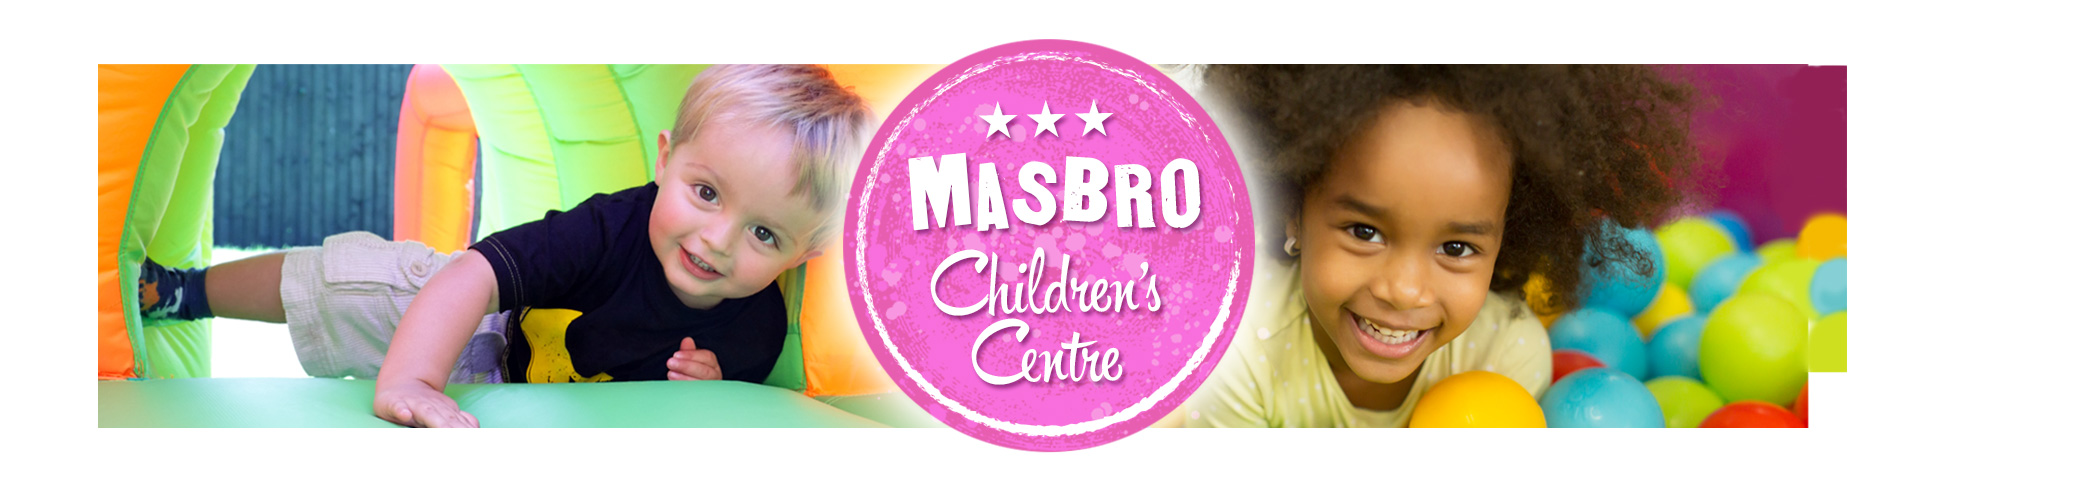 Banner 1 for Masbro Childrens Centre page